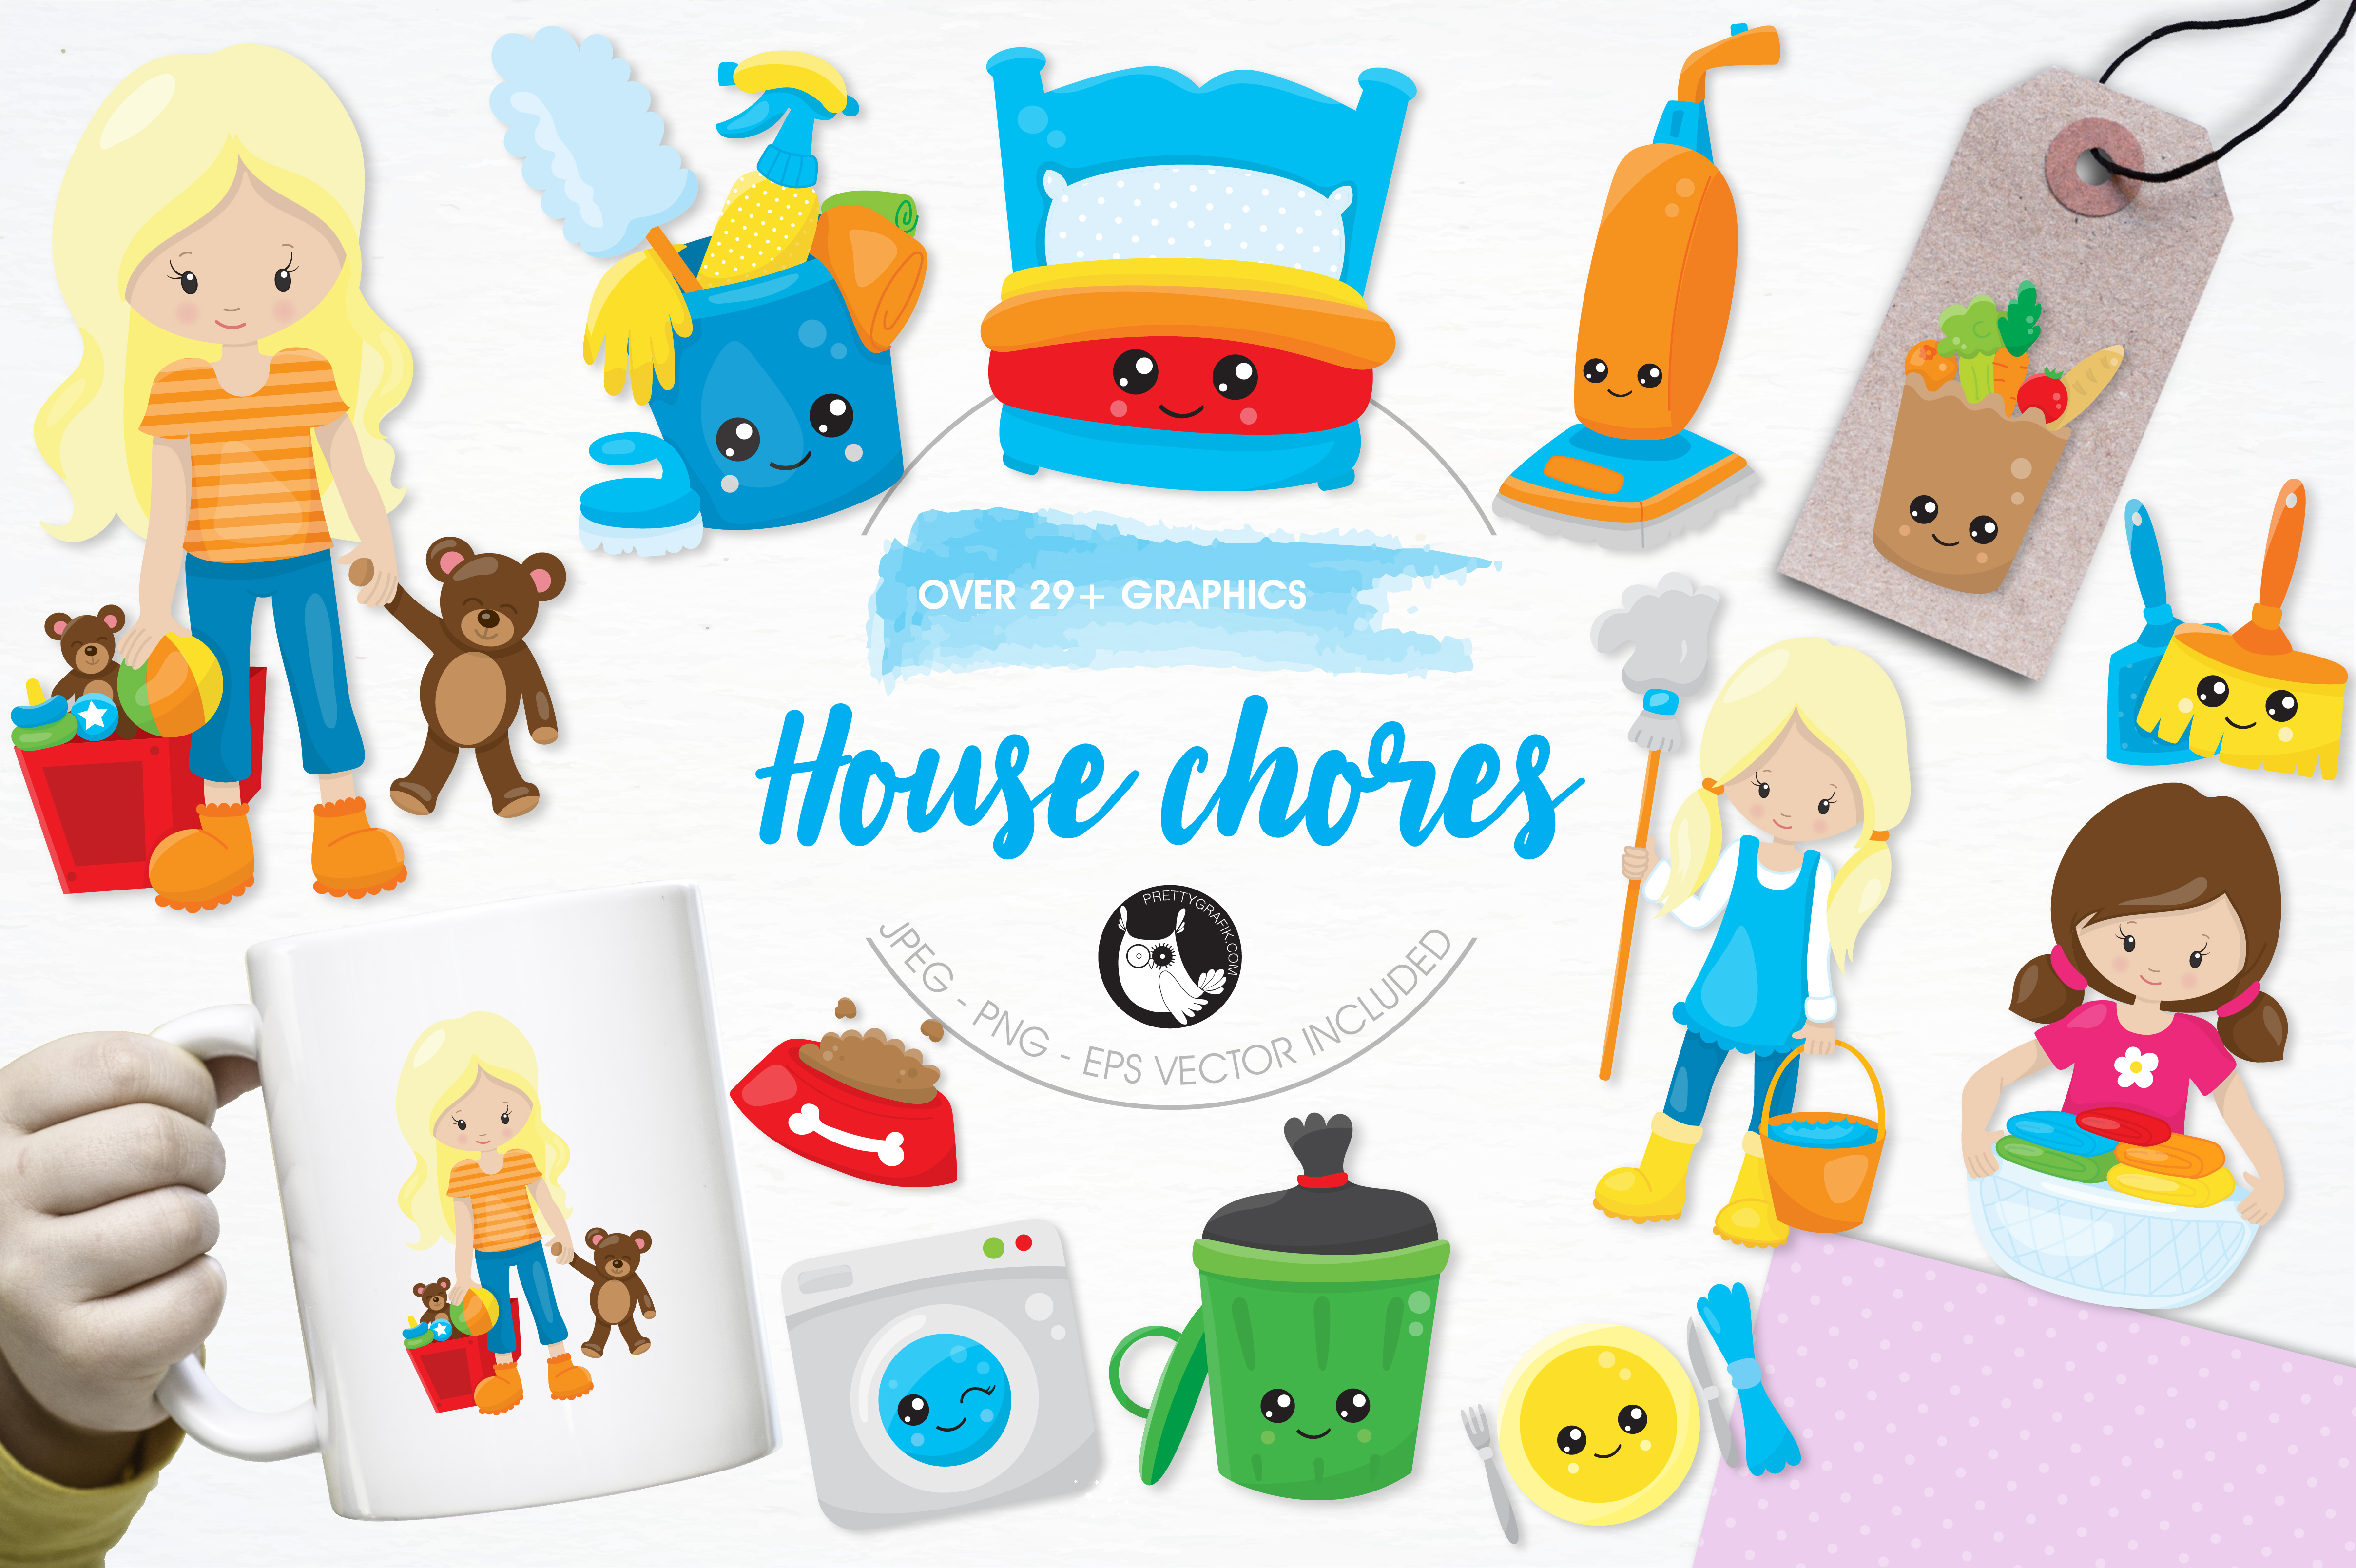 House Chores Graphic By Prettygrafik Image 1